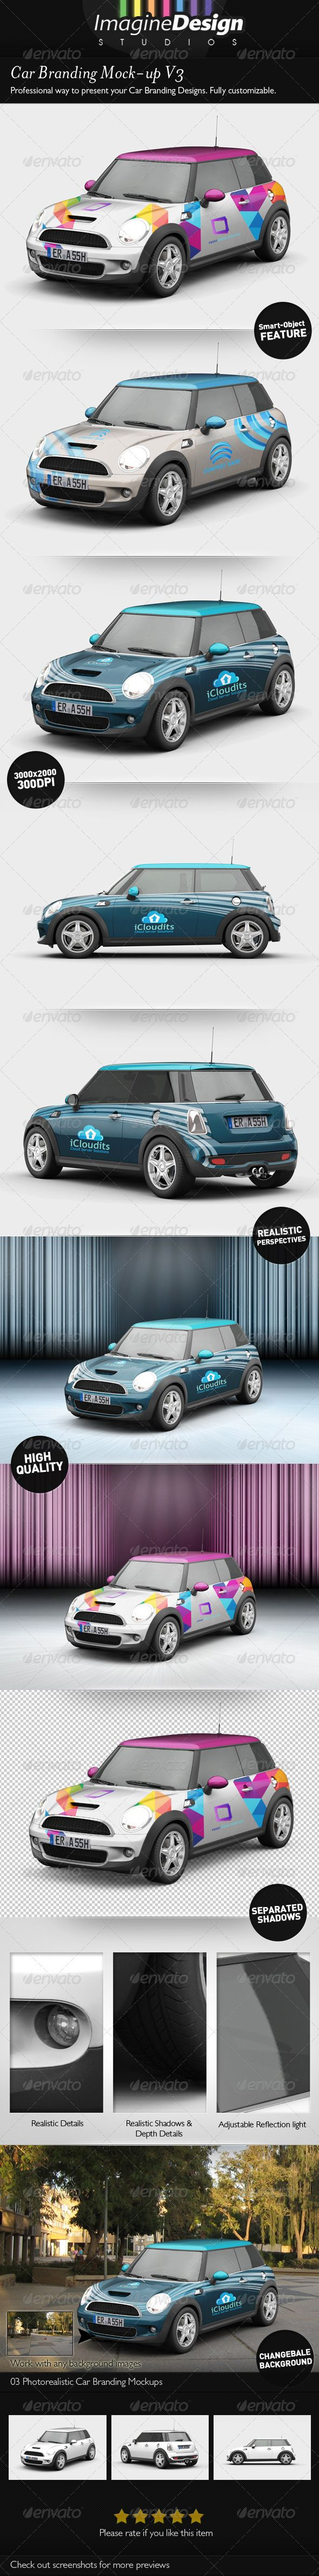 Car Branding Mock-up V3 Download here: https://graphicriver.net/item/car-branding-mockup-v3/5394107?ref=KlitVogli